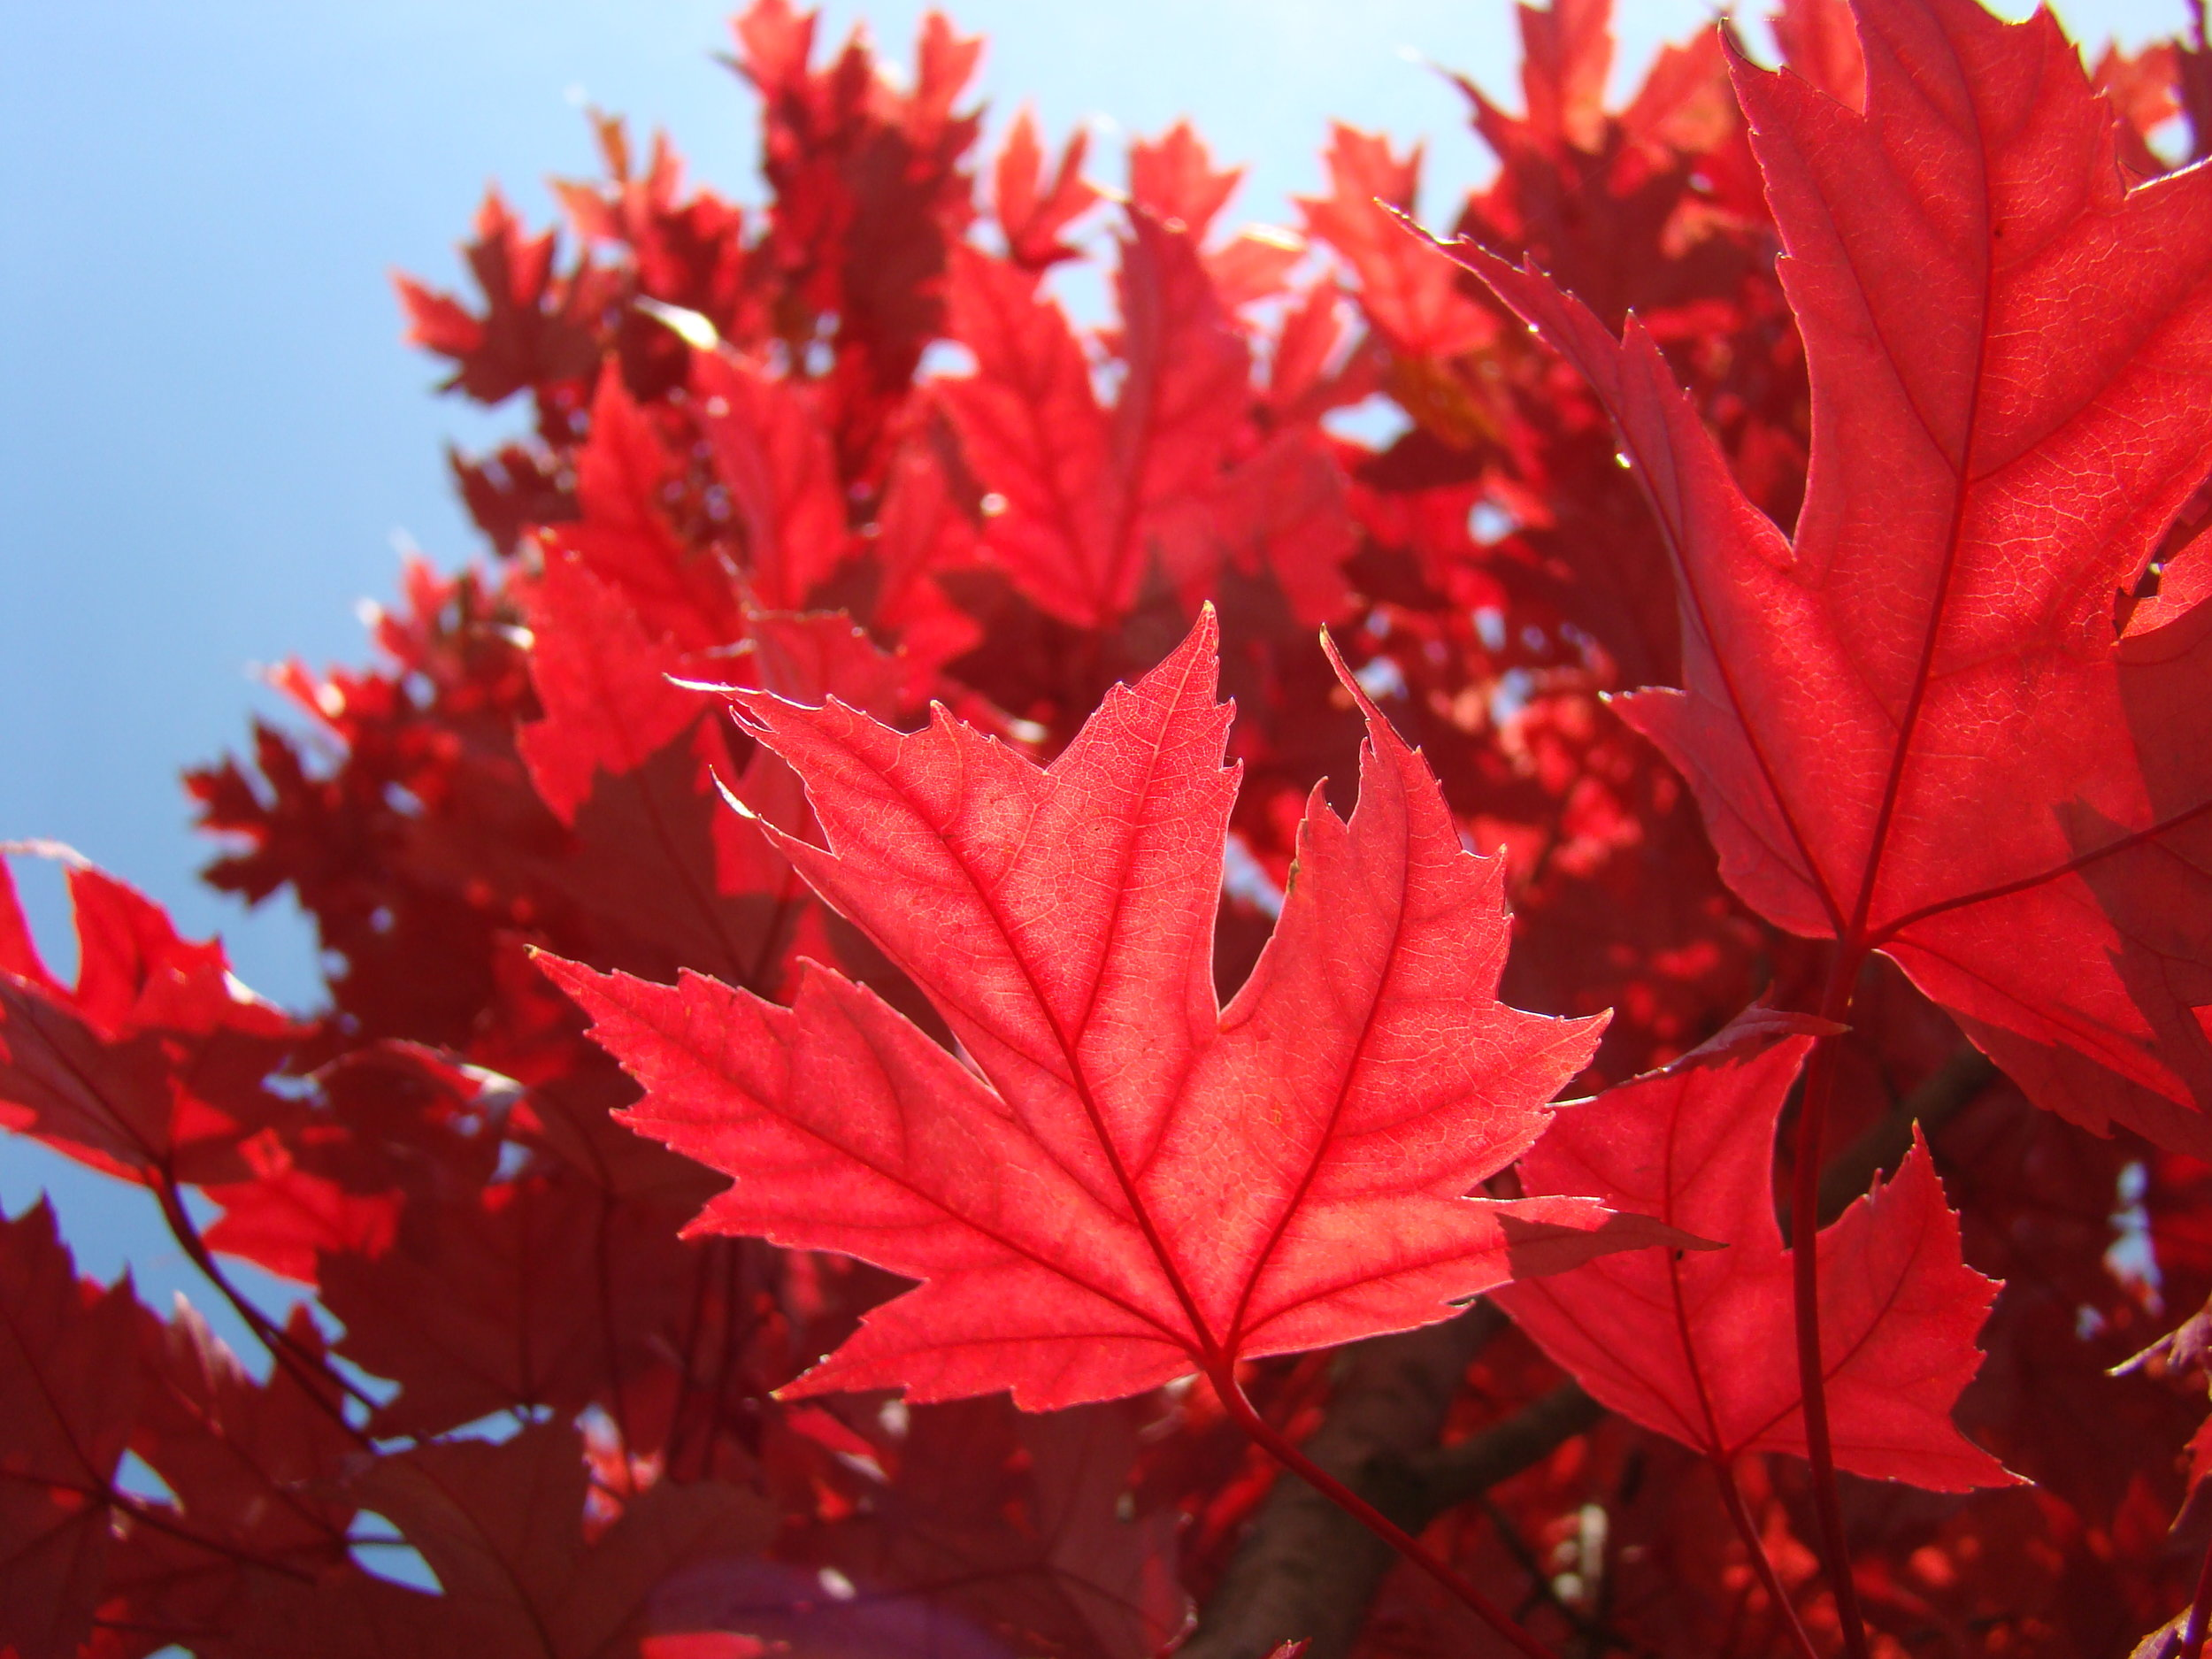 Red and orange colors, produced by pigments called anthocyanins, may protect foliage by blocking excess sunlight.